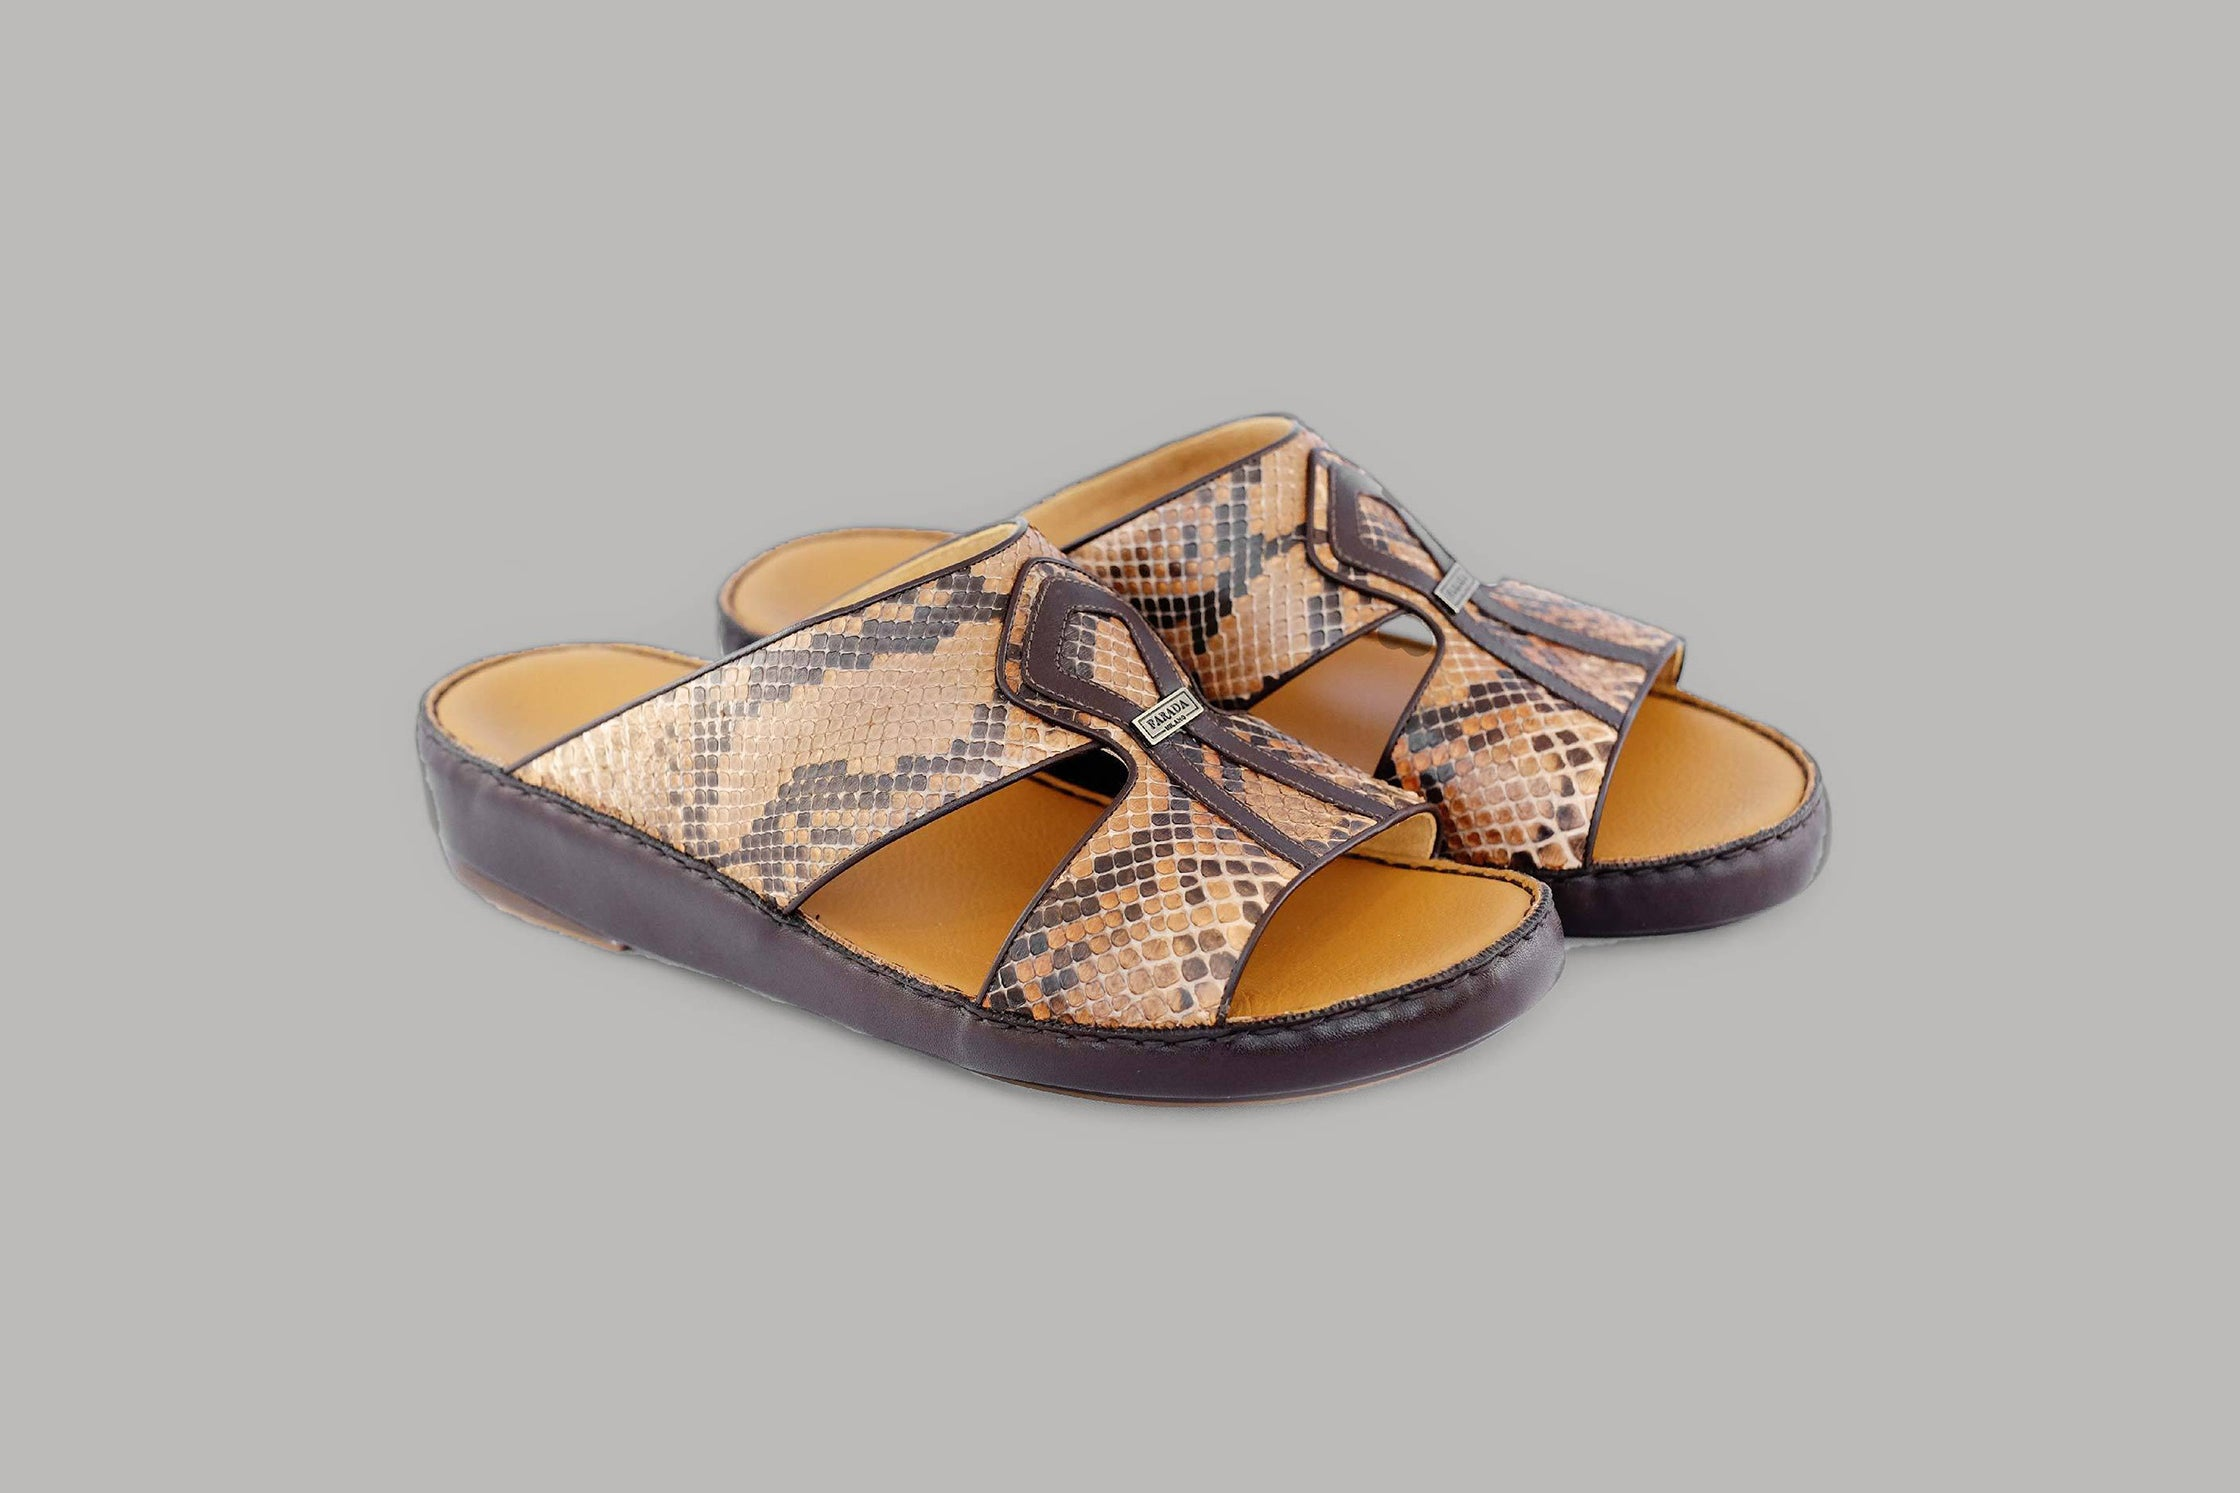 Alberto Pitone Tabac Aabic Sandals (3987PY)